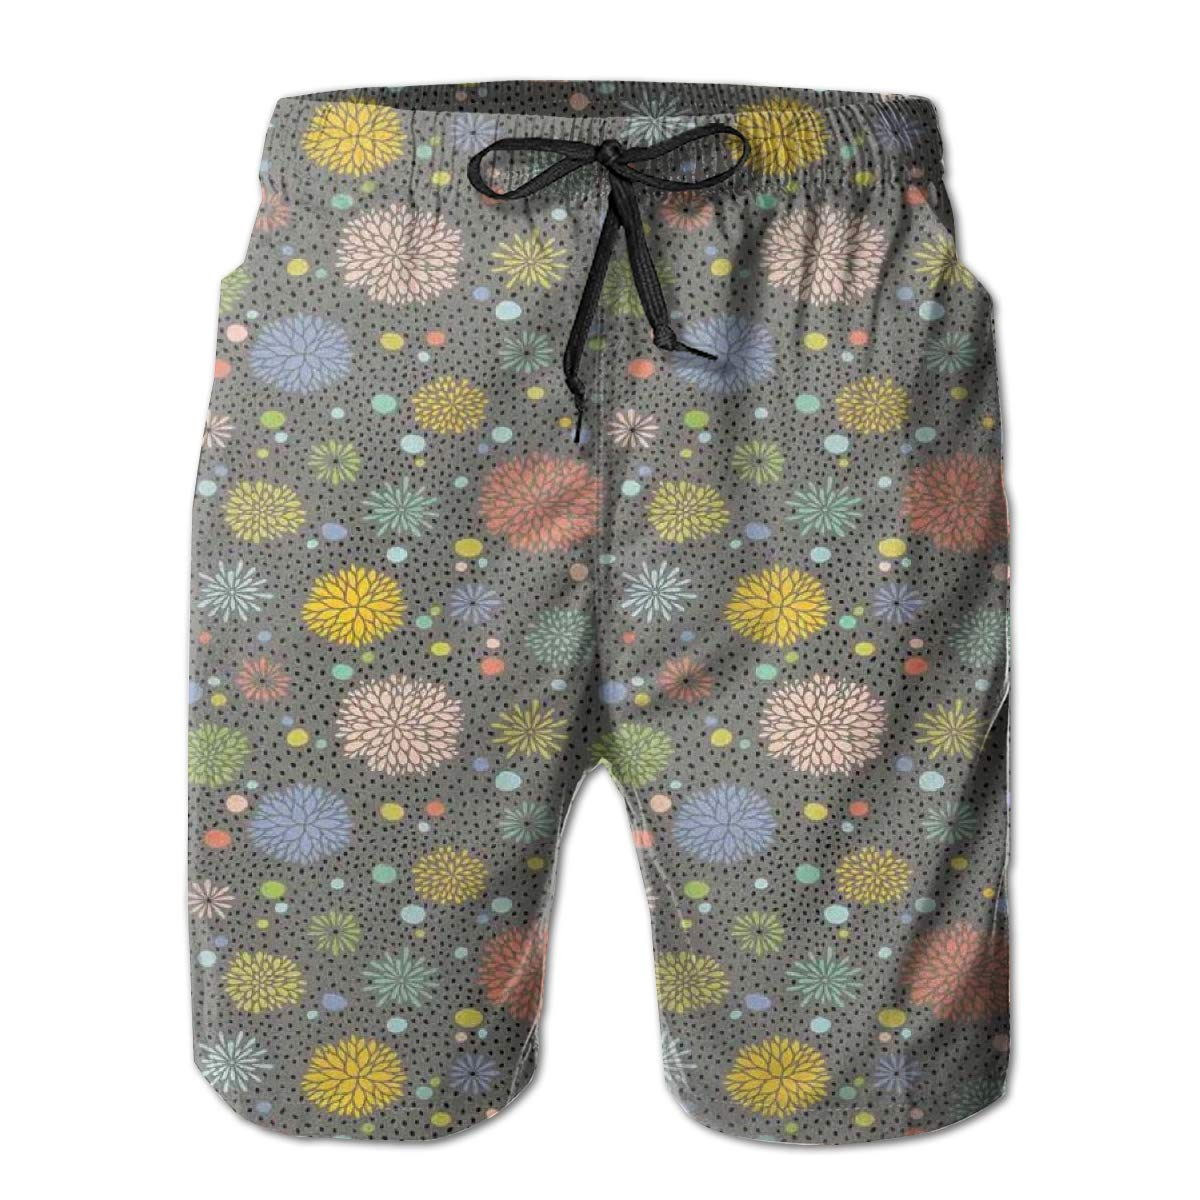 Men Swim Trunks Beach Shorts,Love Themed Flowers Hearts and Paisleys in A Colorful Romantic Illustration